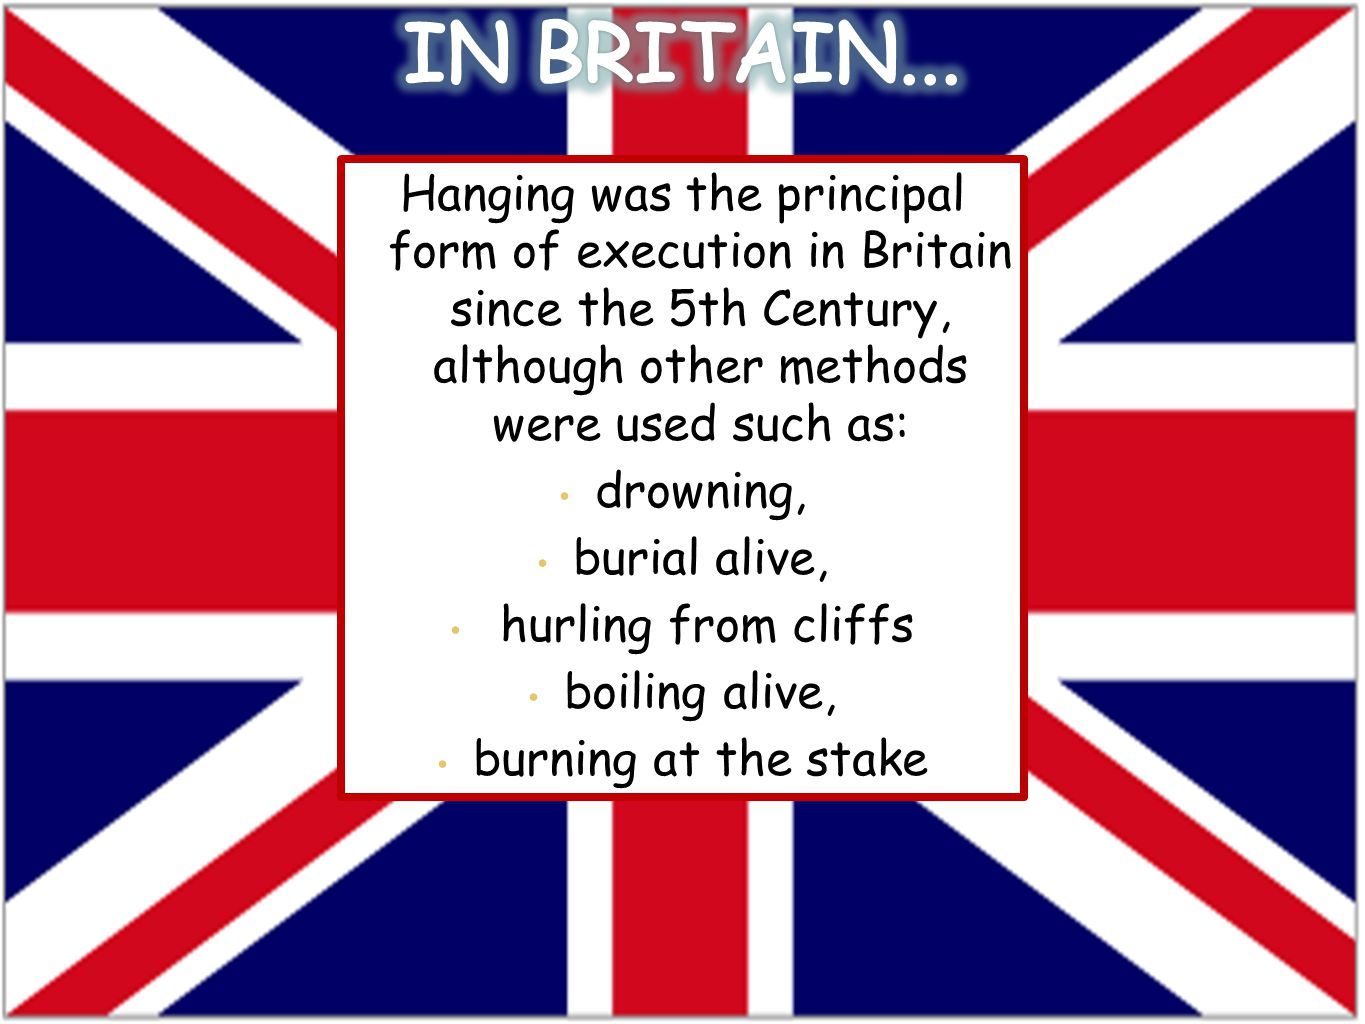 Hanging was the principal form of execution in Britain since the 5th Century, although other methods were used such as: drowning, burial alive, hurling from cliffs boiling alive, burning at the stake